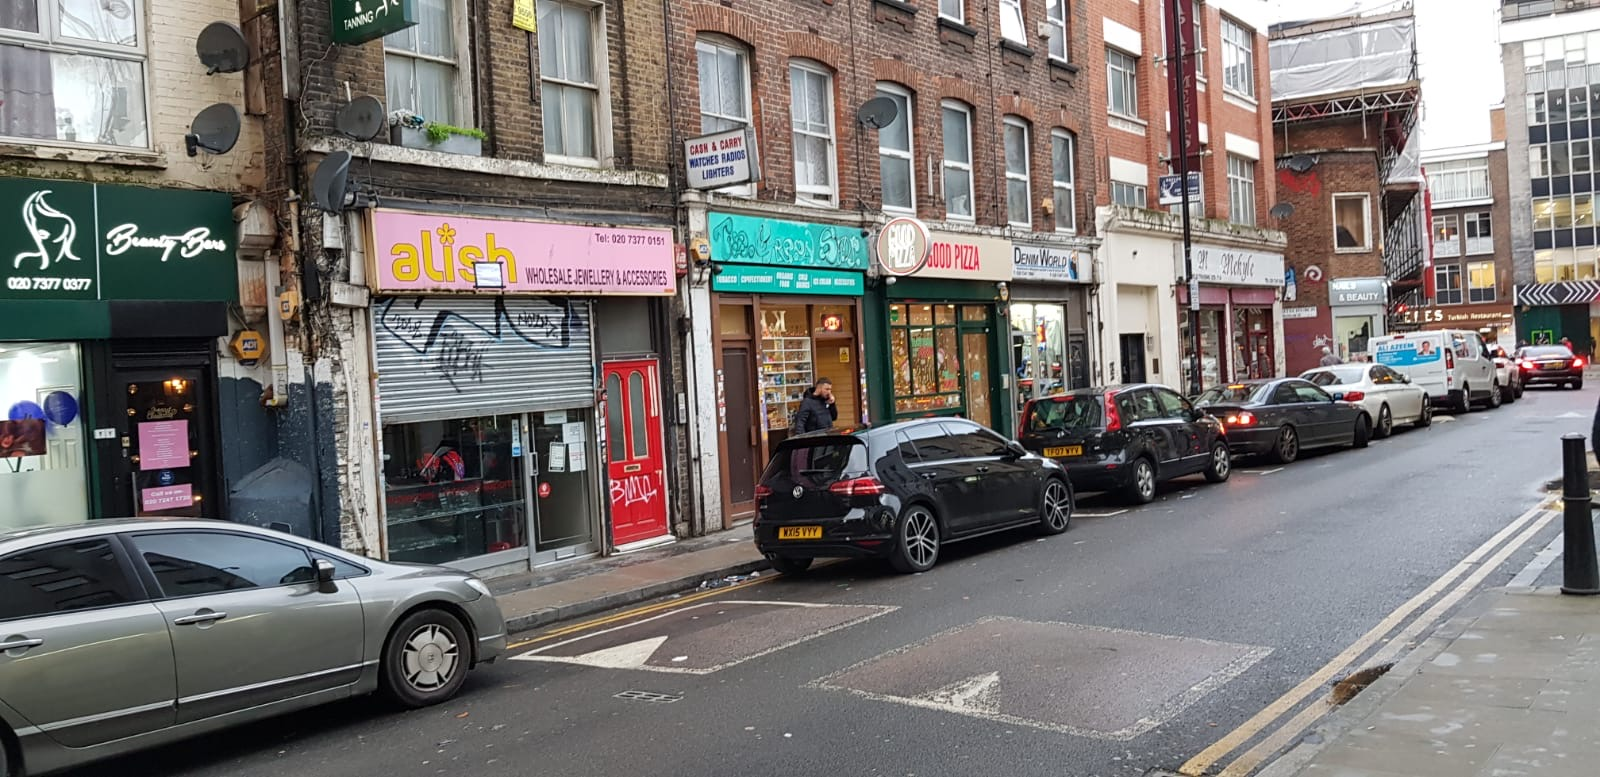 <b> SHOP TO LET - White Church Lane, London E1 <b>